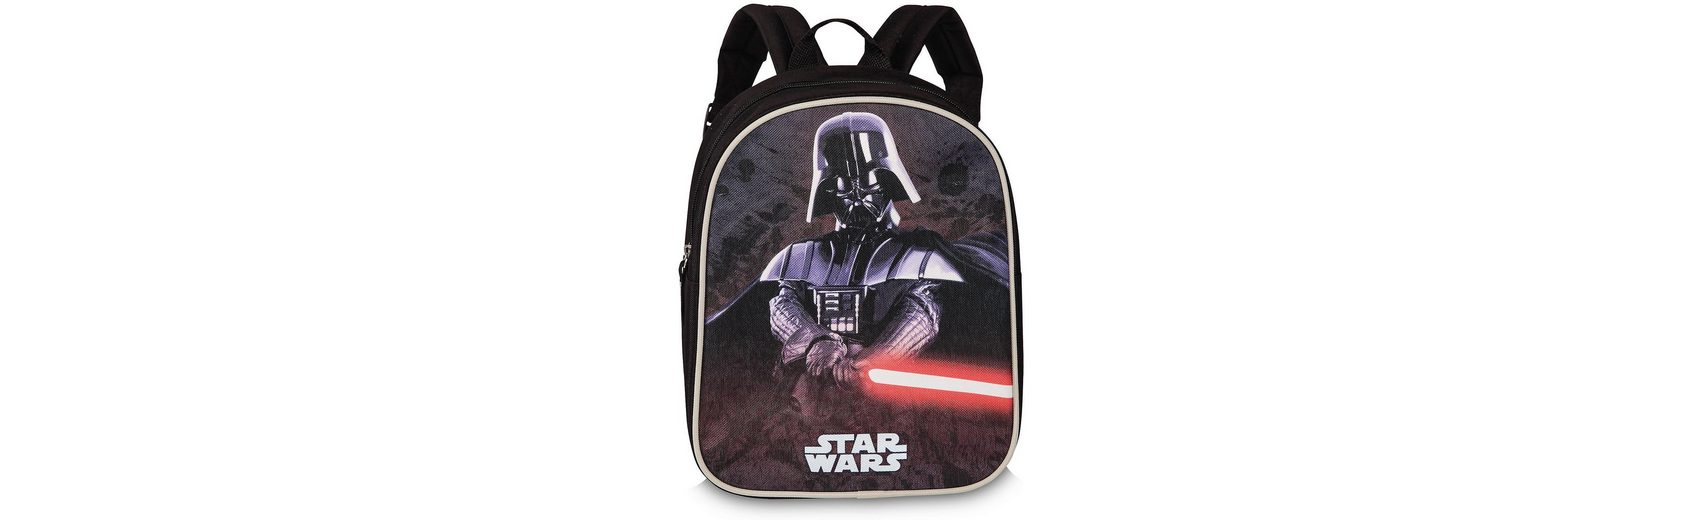 Kinderrucksack Star Wars Darth Vader